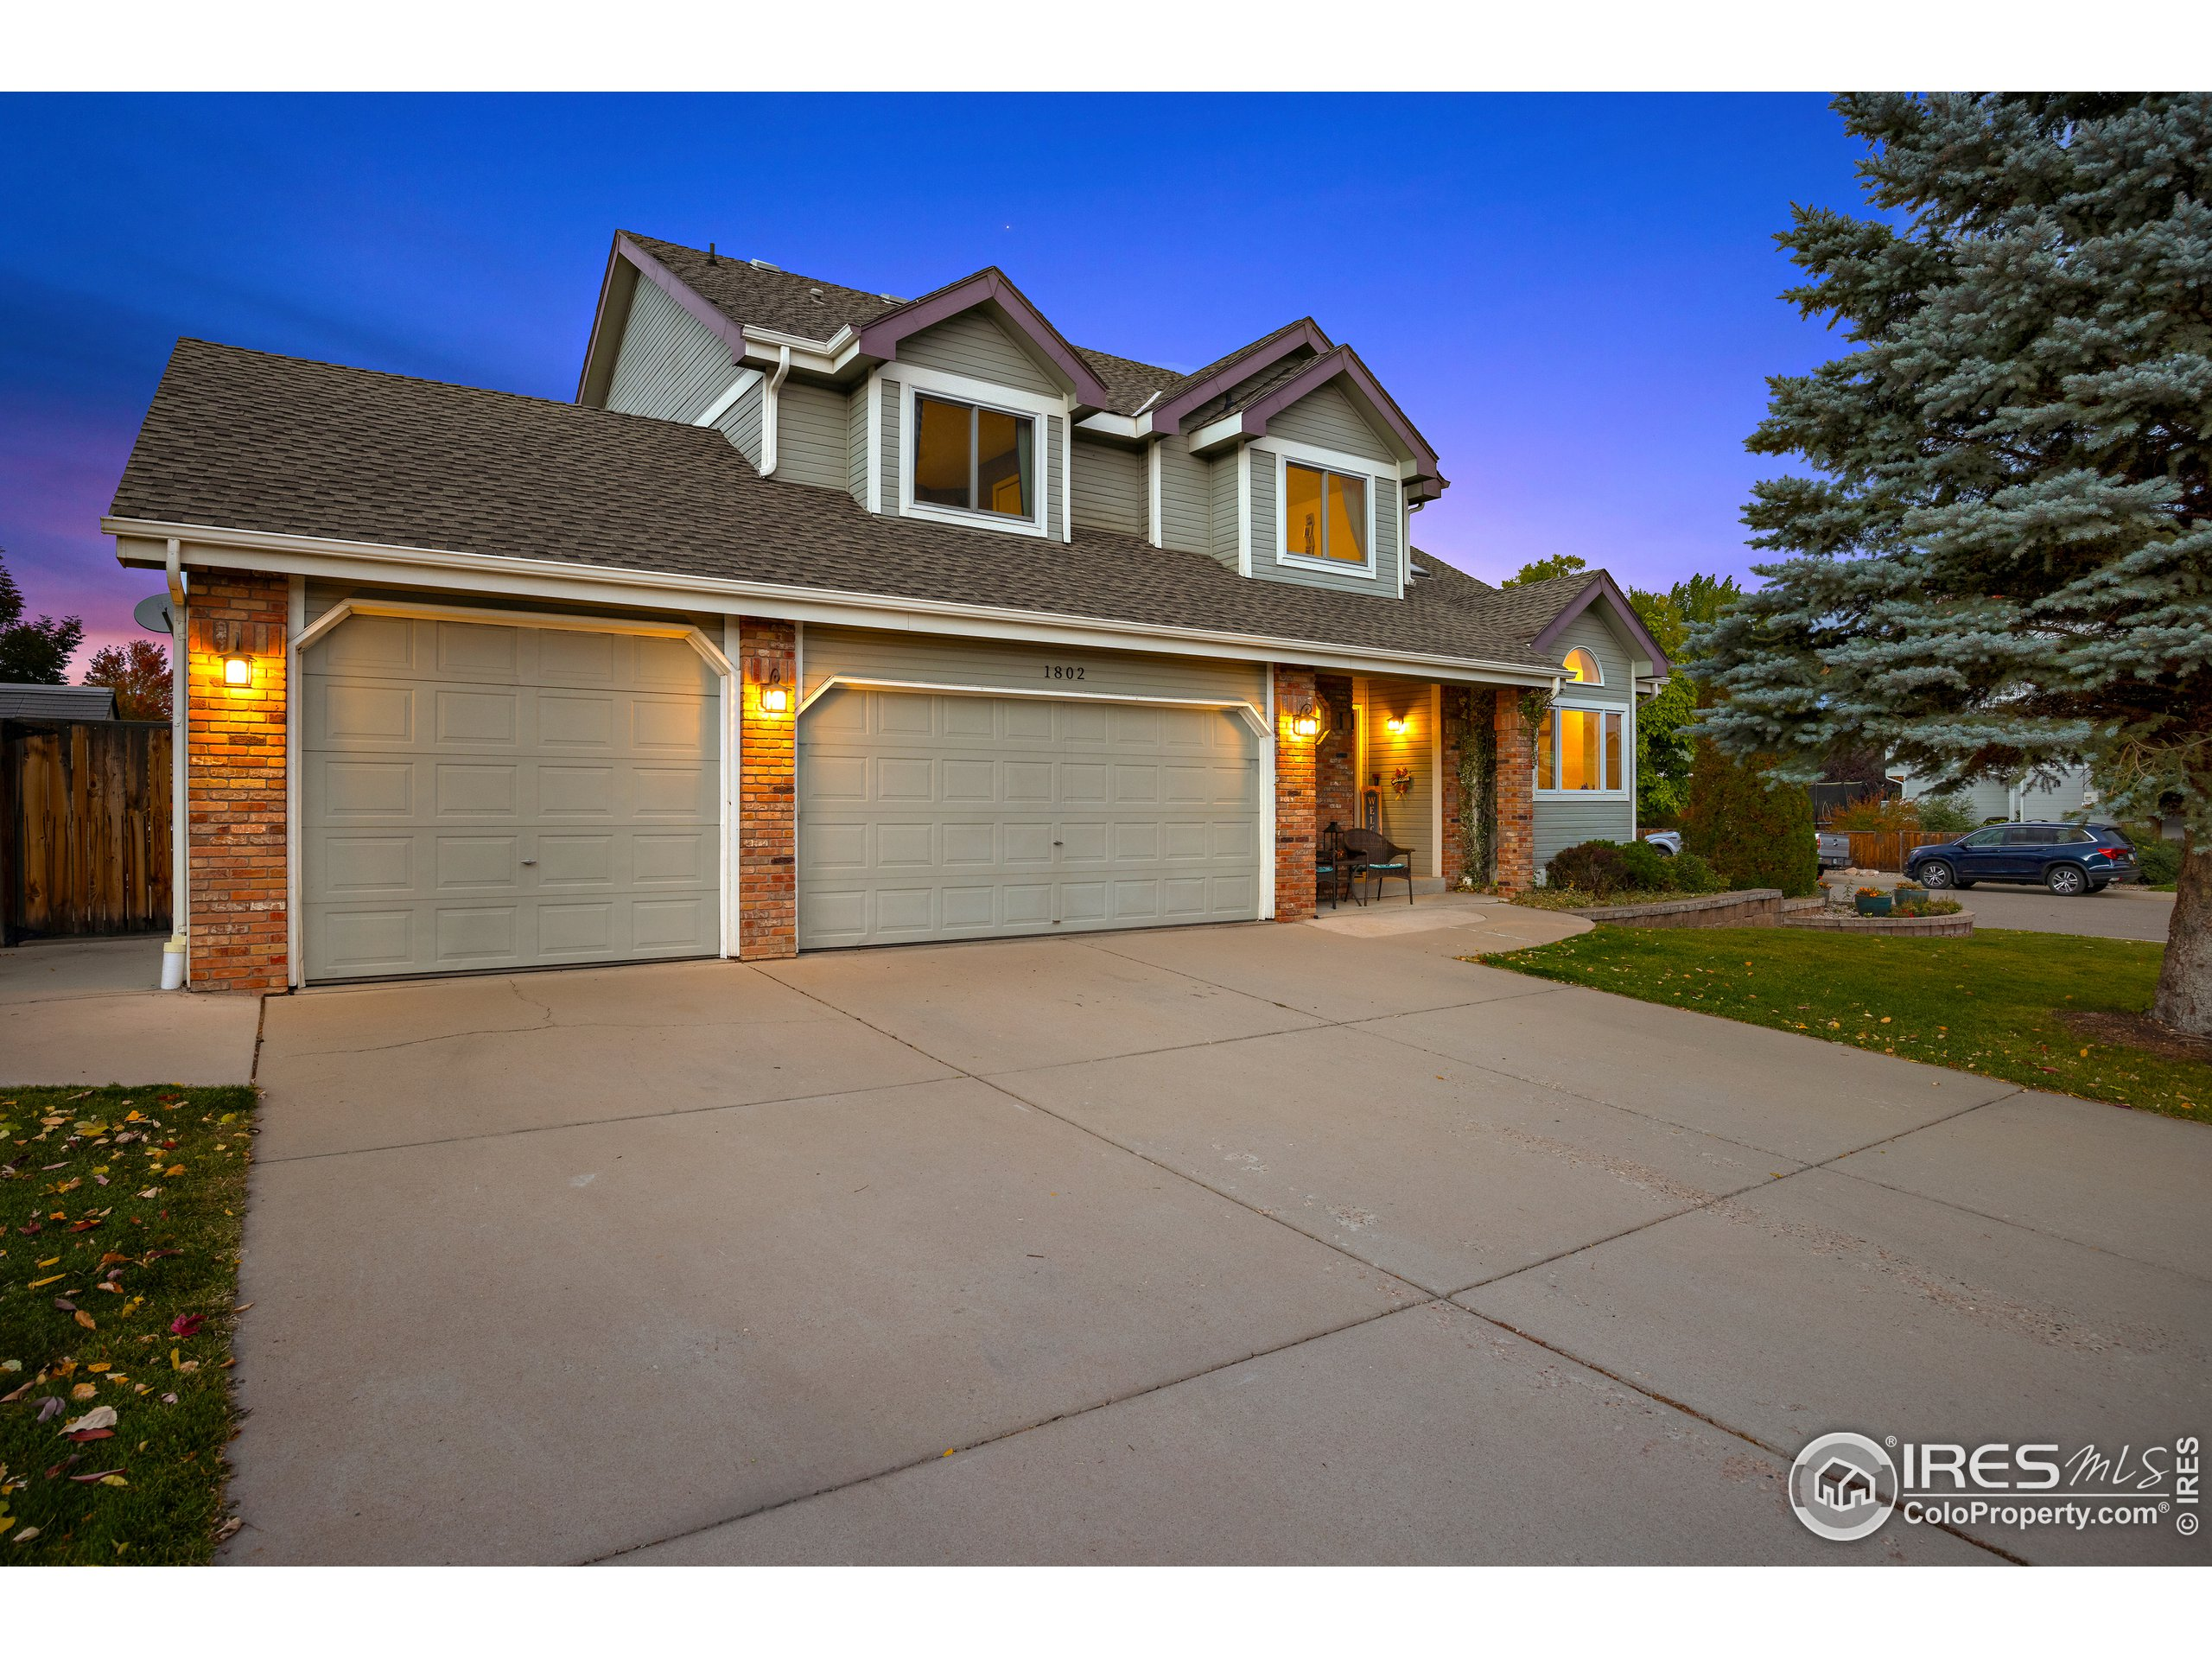 1802 Rolling Gate Rd, Fort Collins, CO 80526